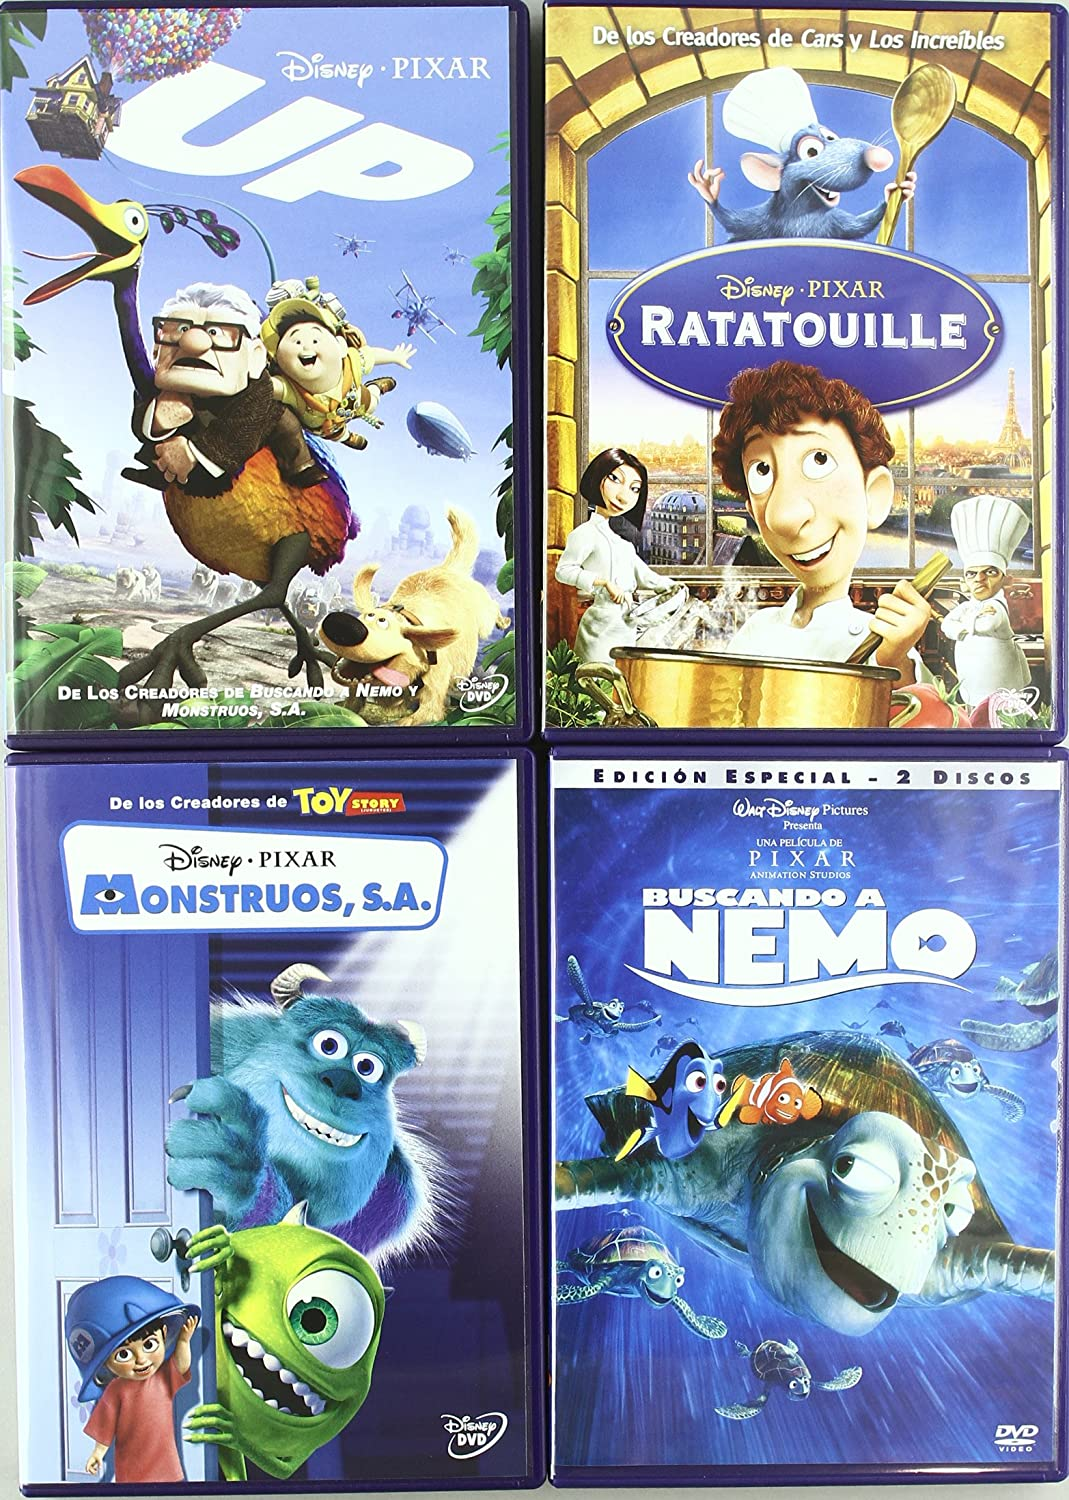 Spain-Pixar Pack Dvd 12 Titles: Amazon.es: Personajes Animados ...